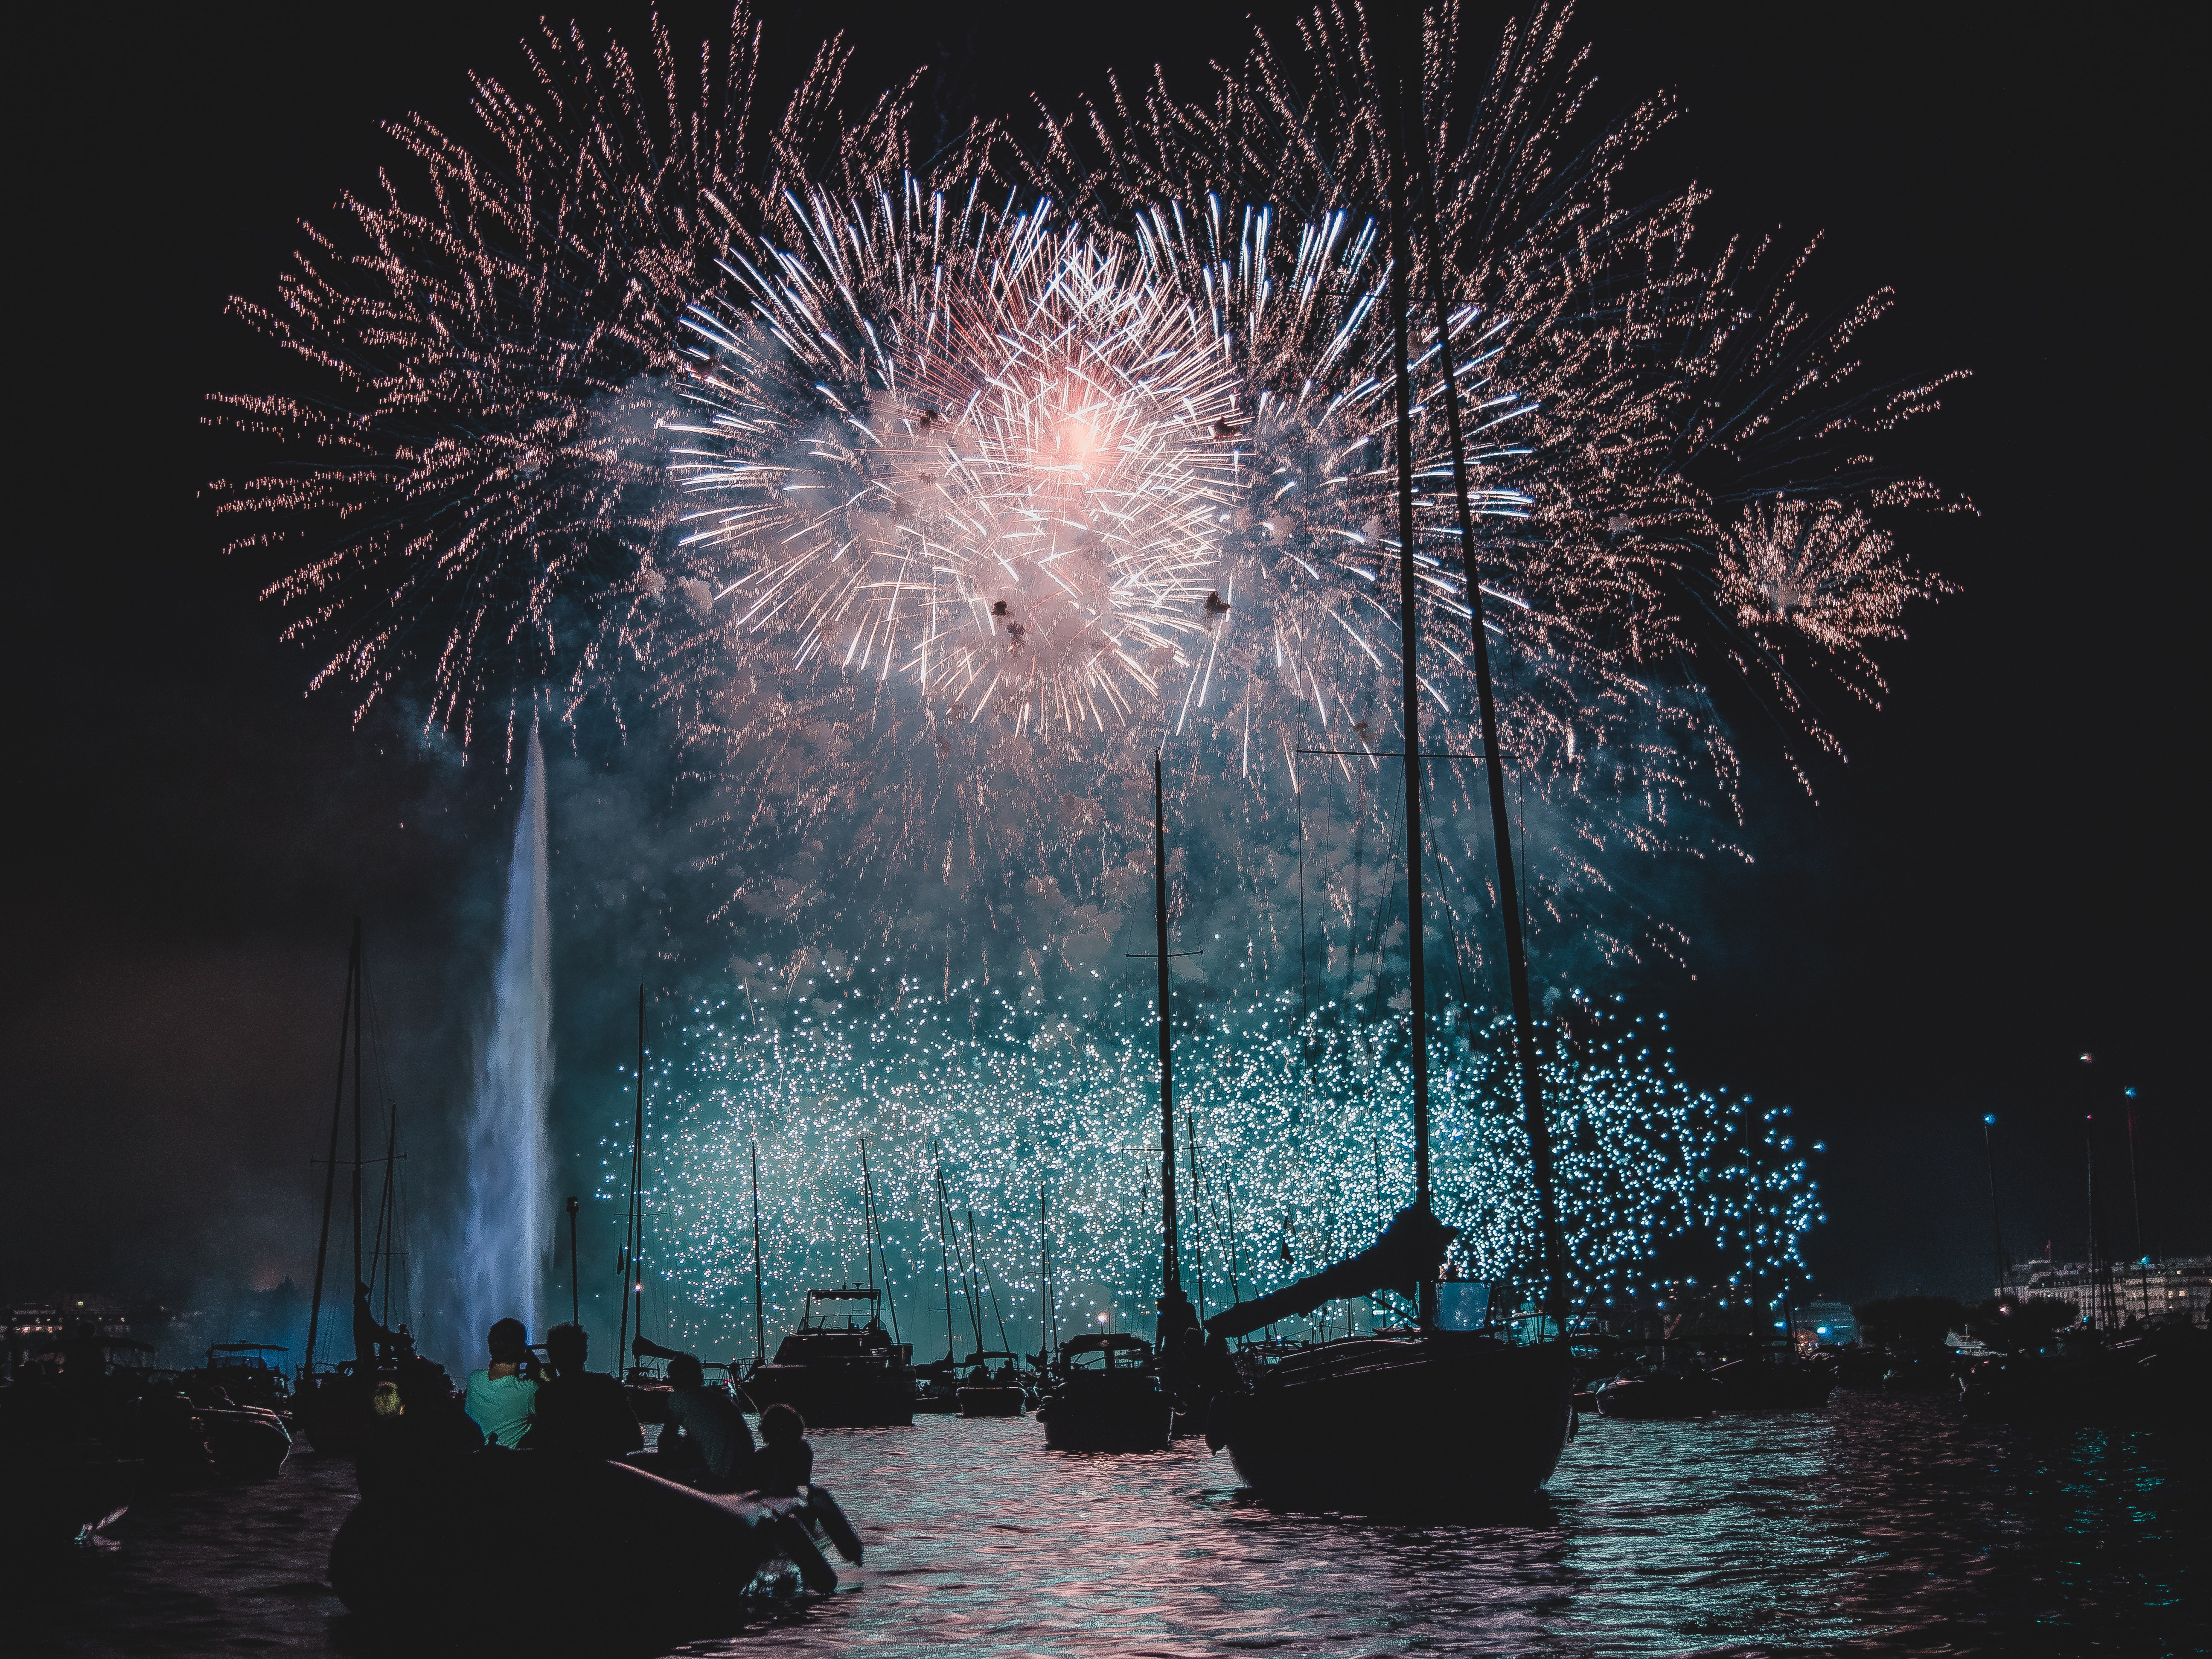 silhouette of boats under fireworks during night time